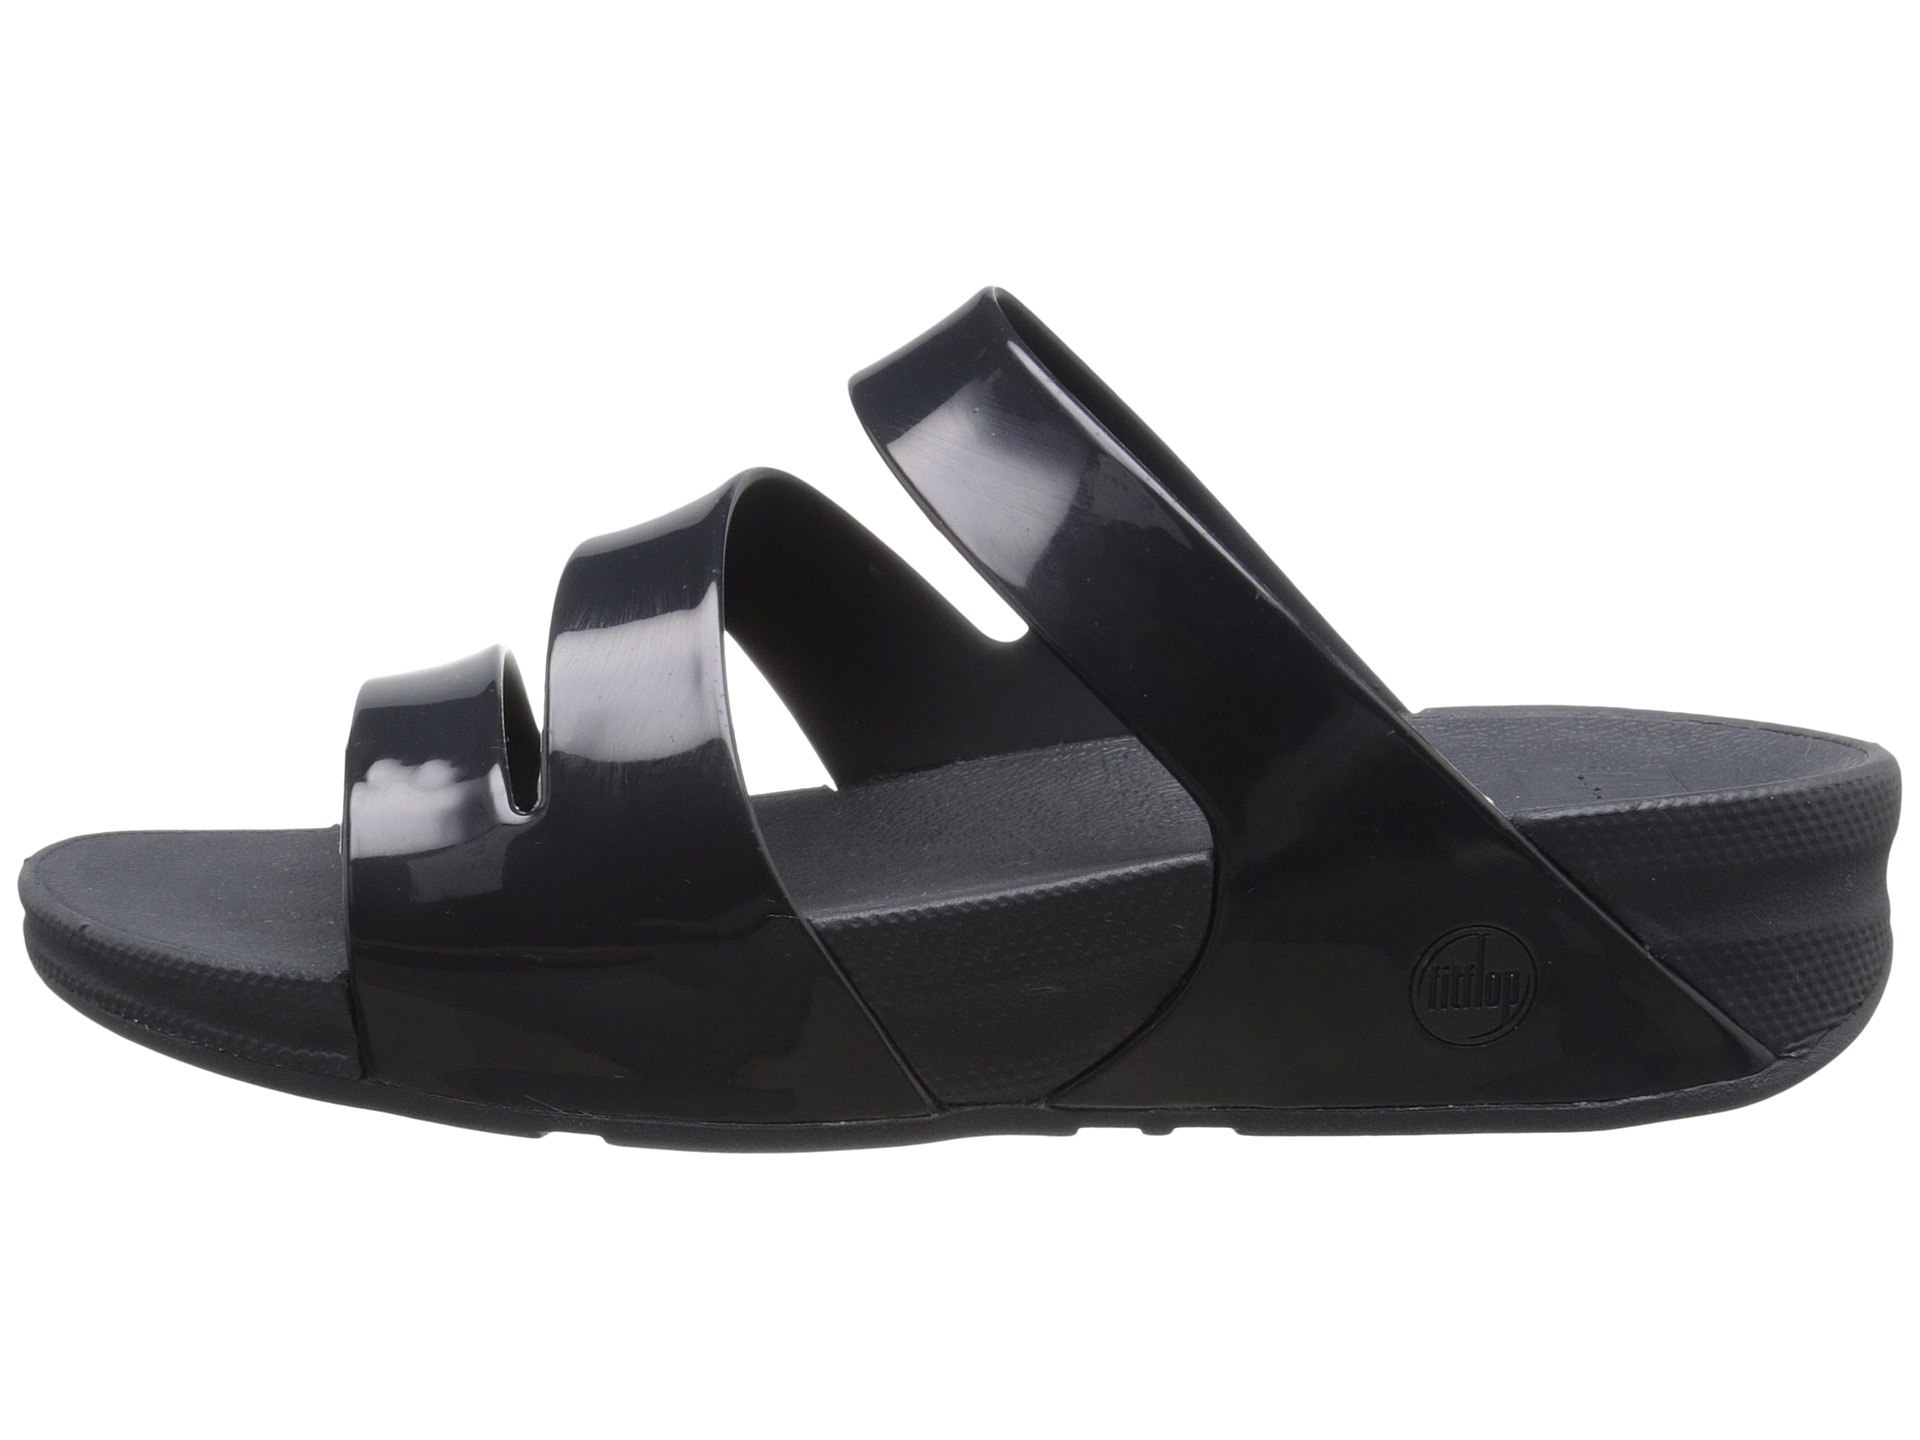 322f5a10a59 Fitflop Superjelly Twist Review